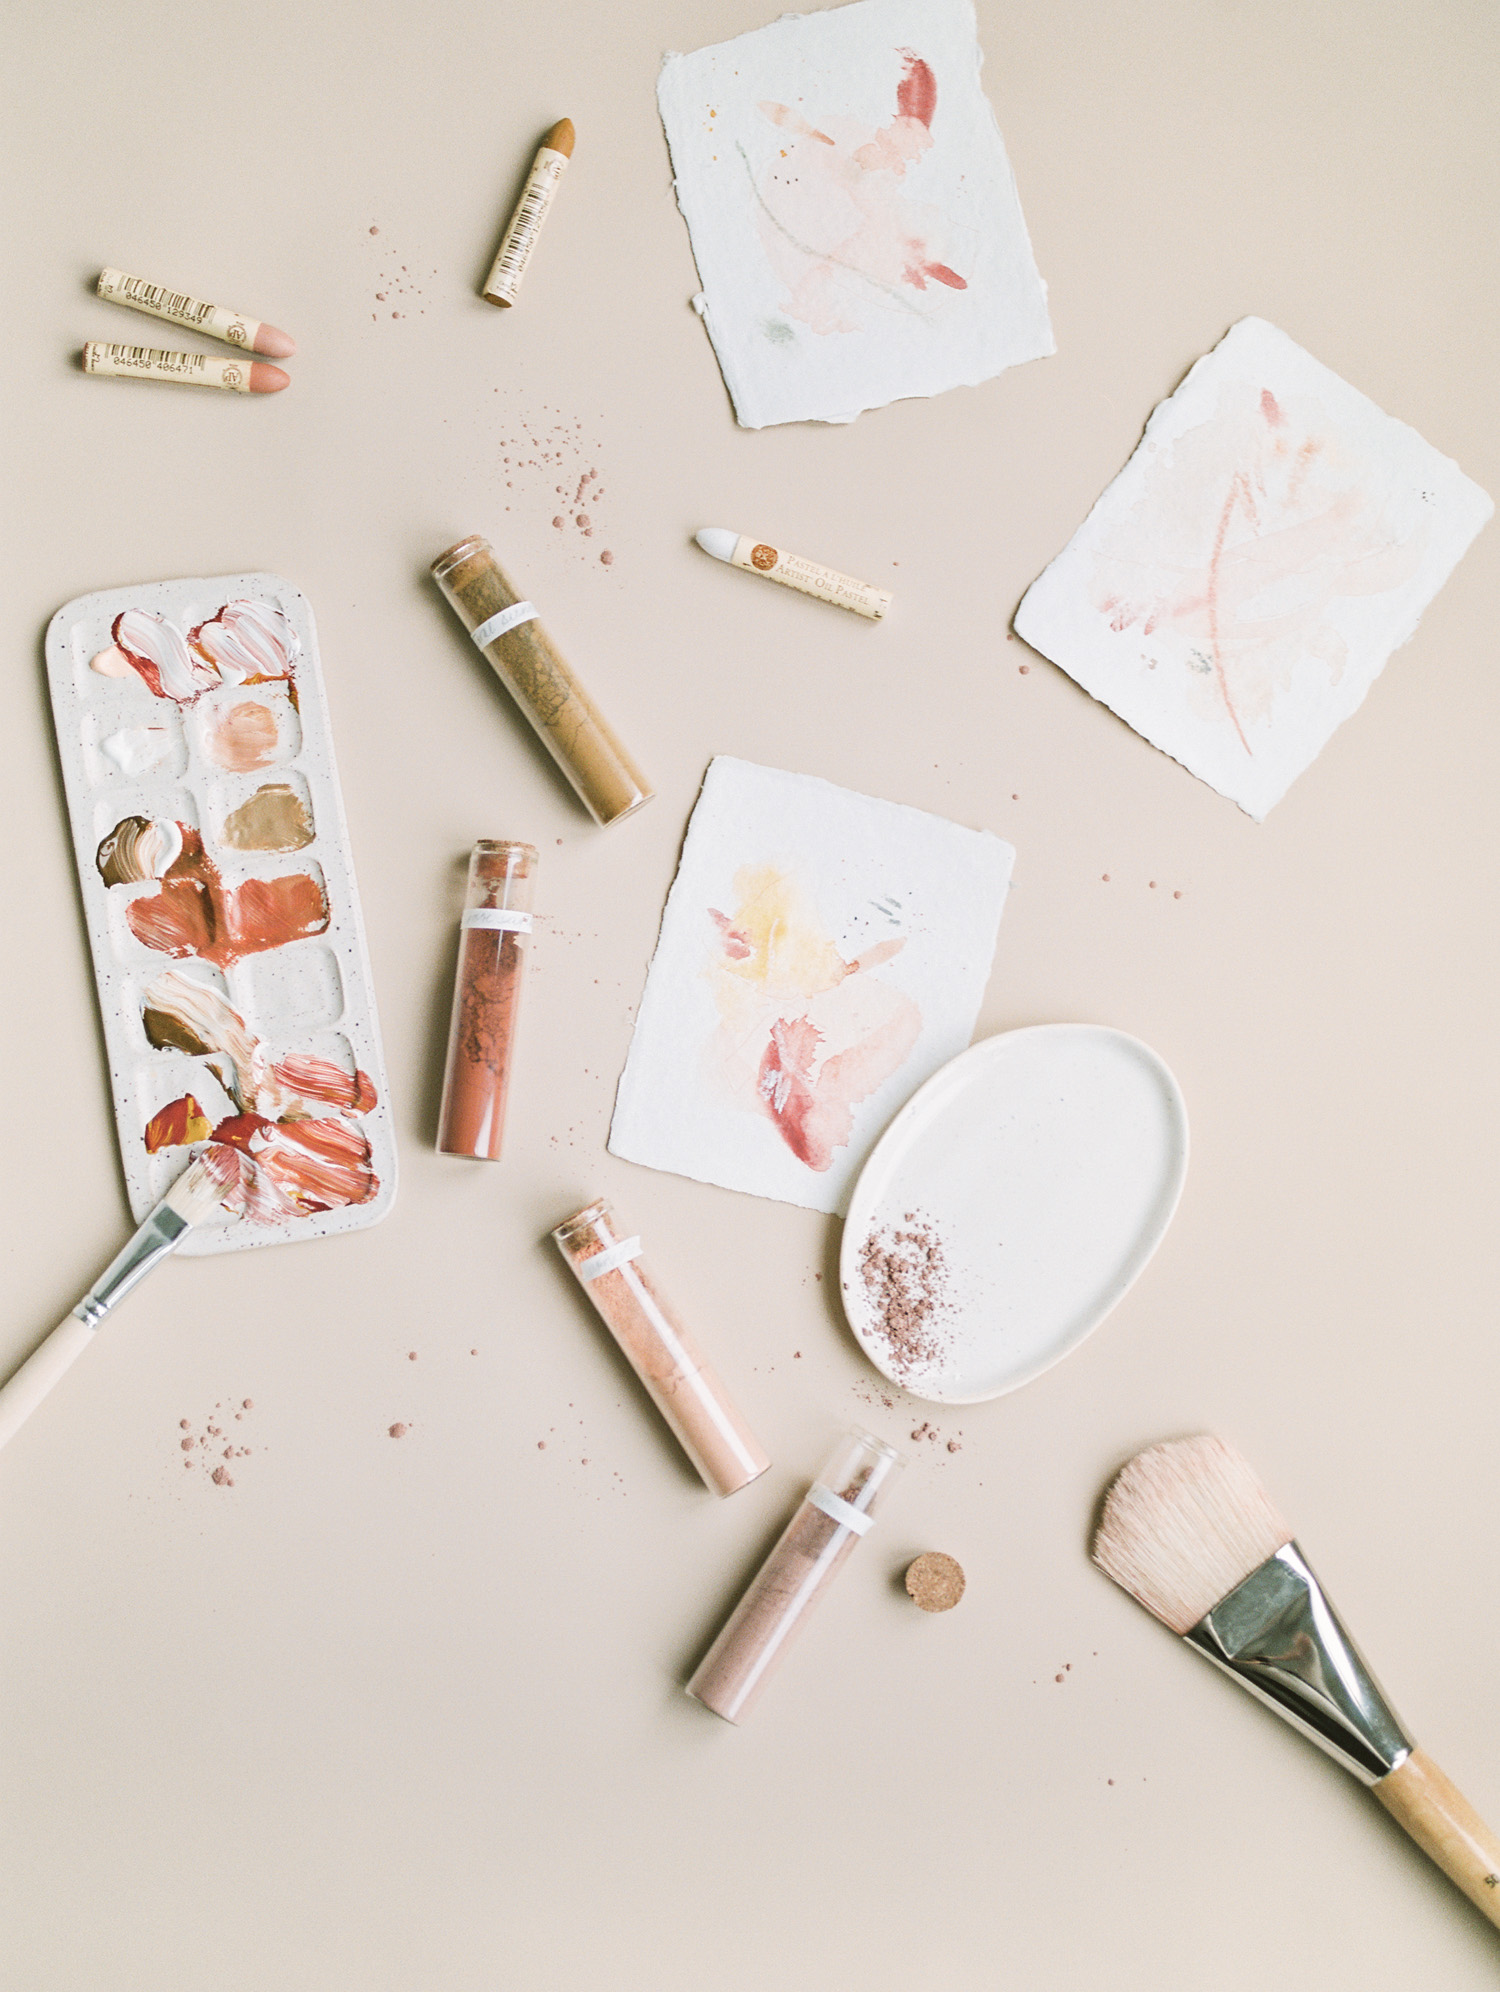 an artist aesthetic flat lay brand photo with paint pigments, palette, and brush in Detroit, Michigan